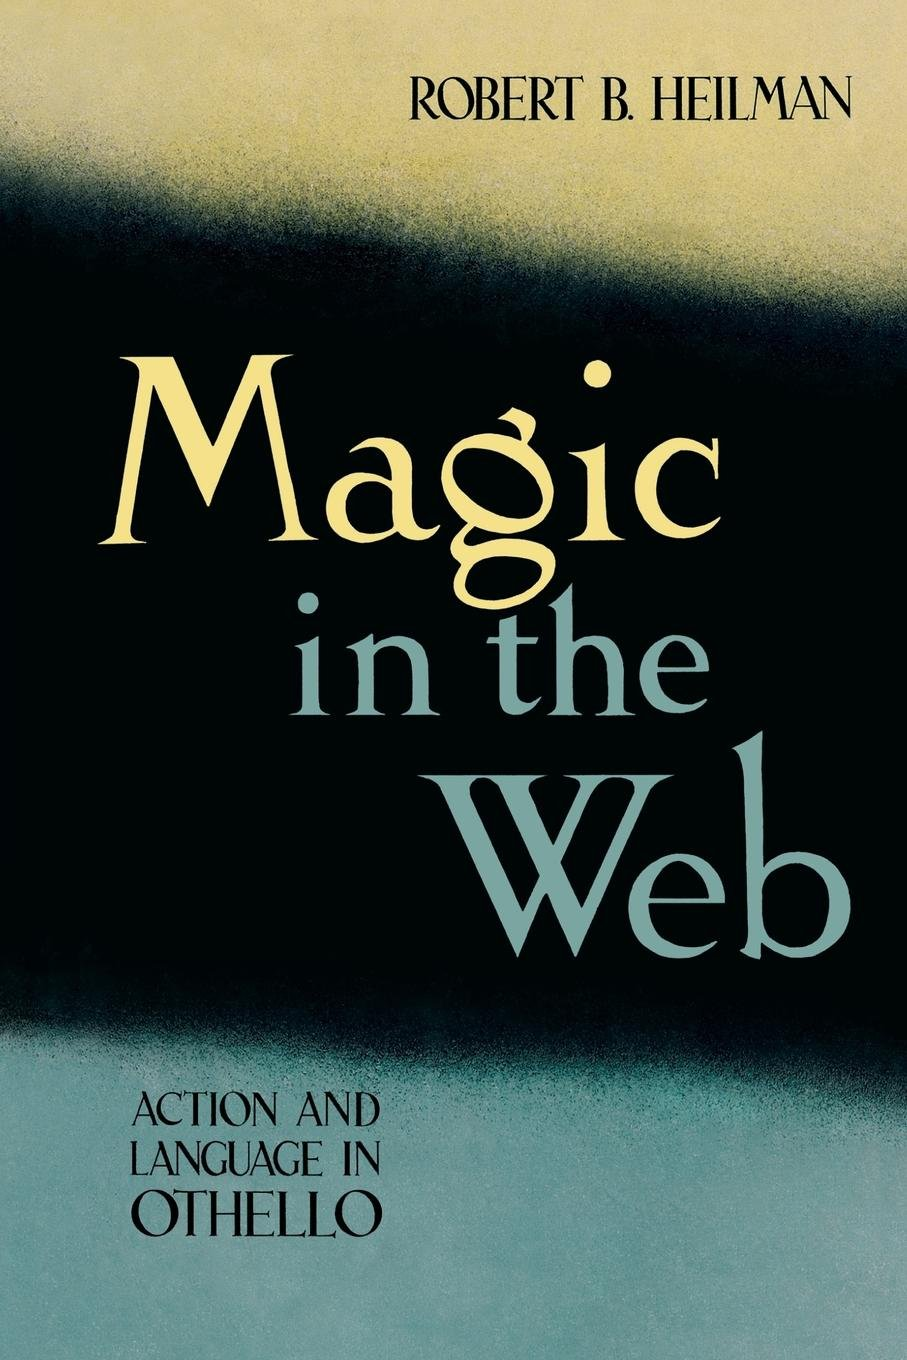 Magic in the Web: Action and Language in Othello